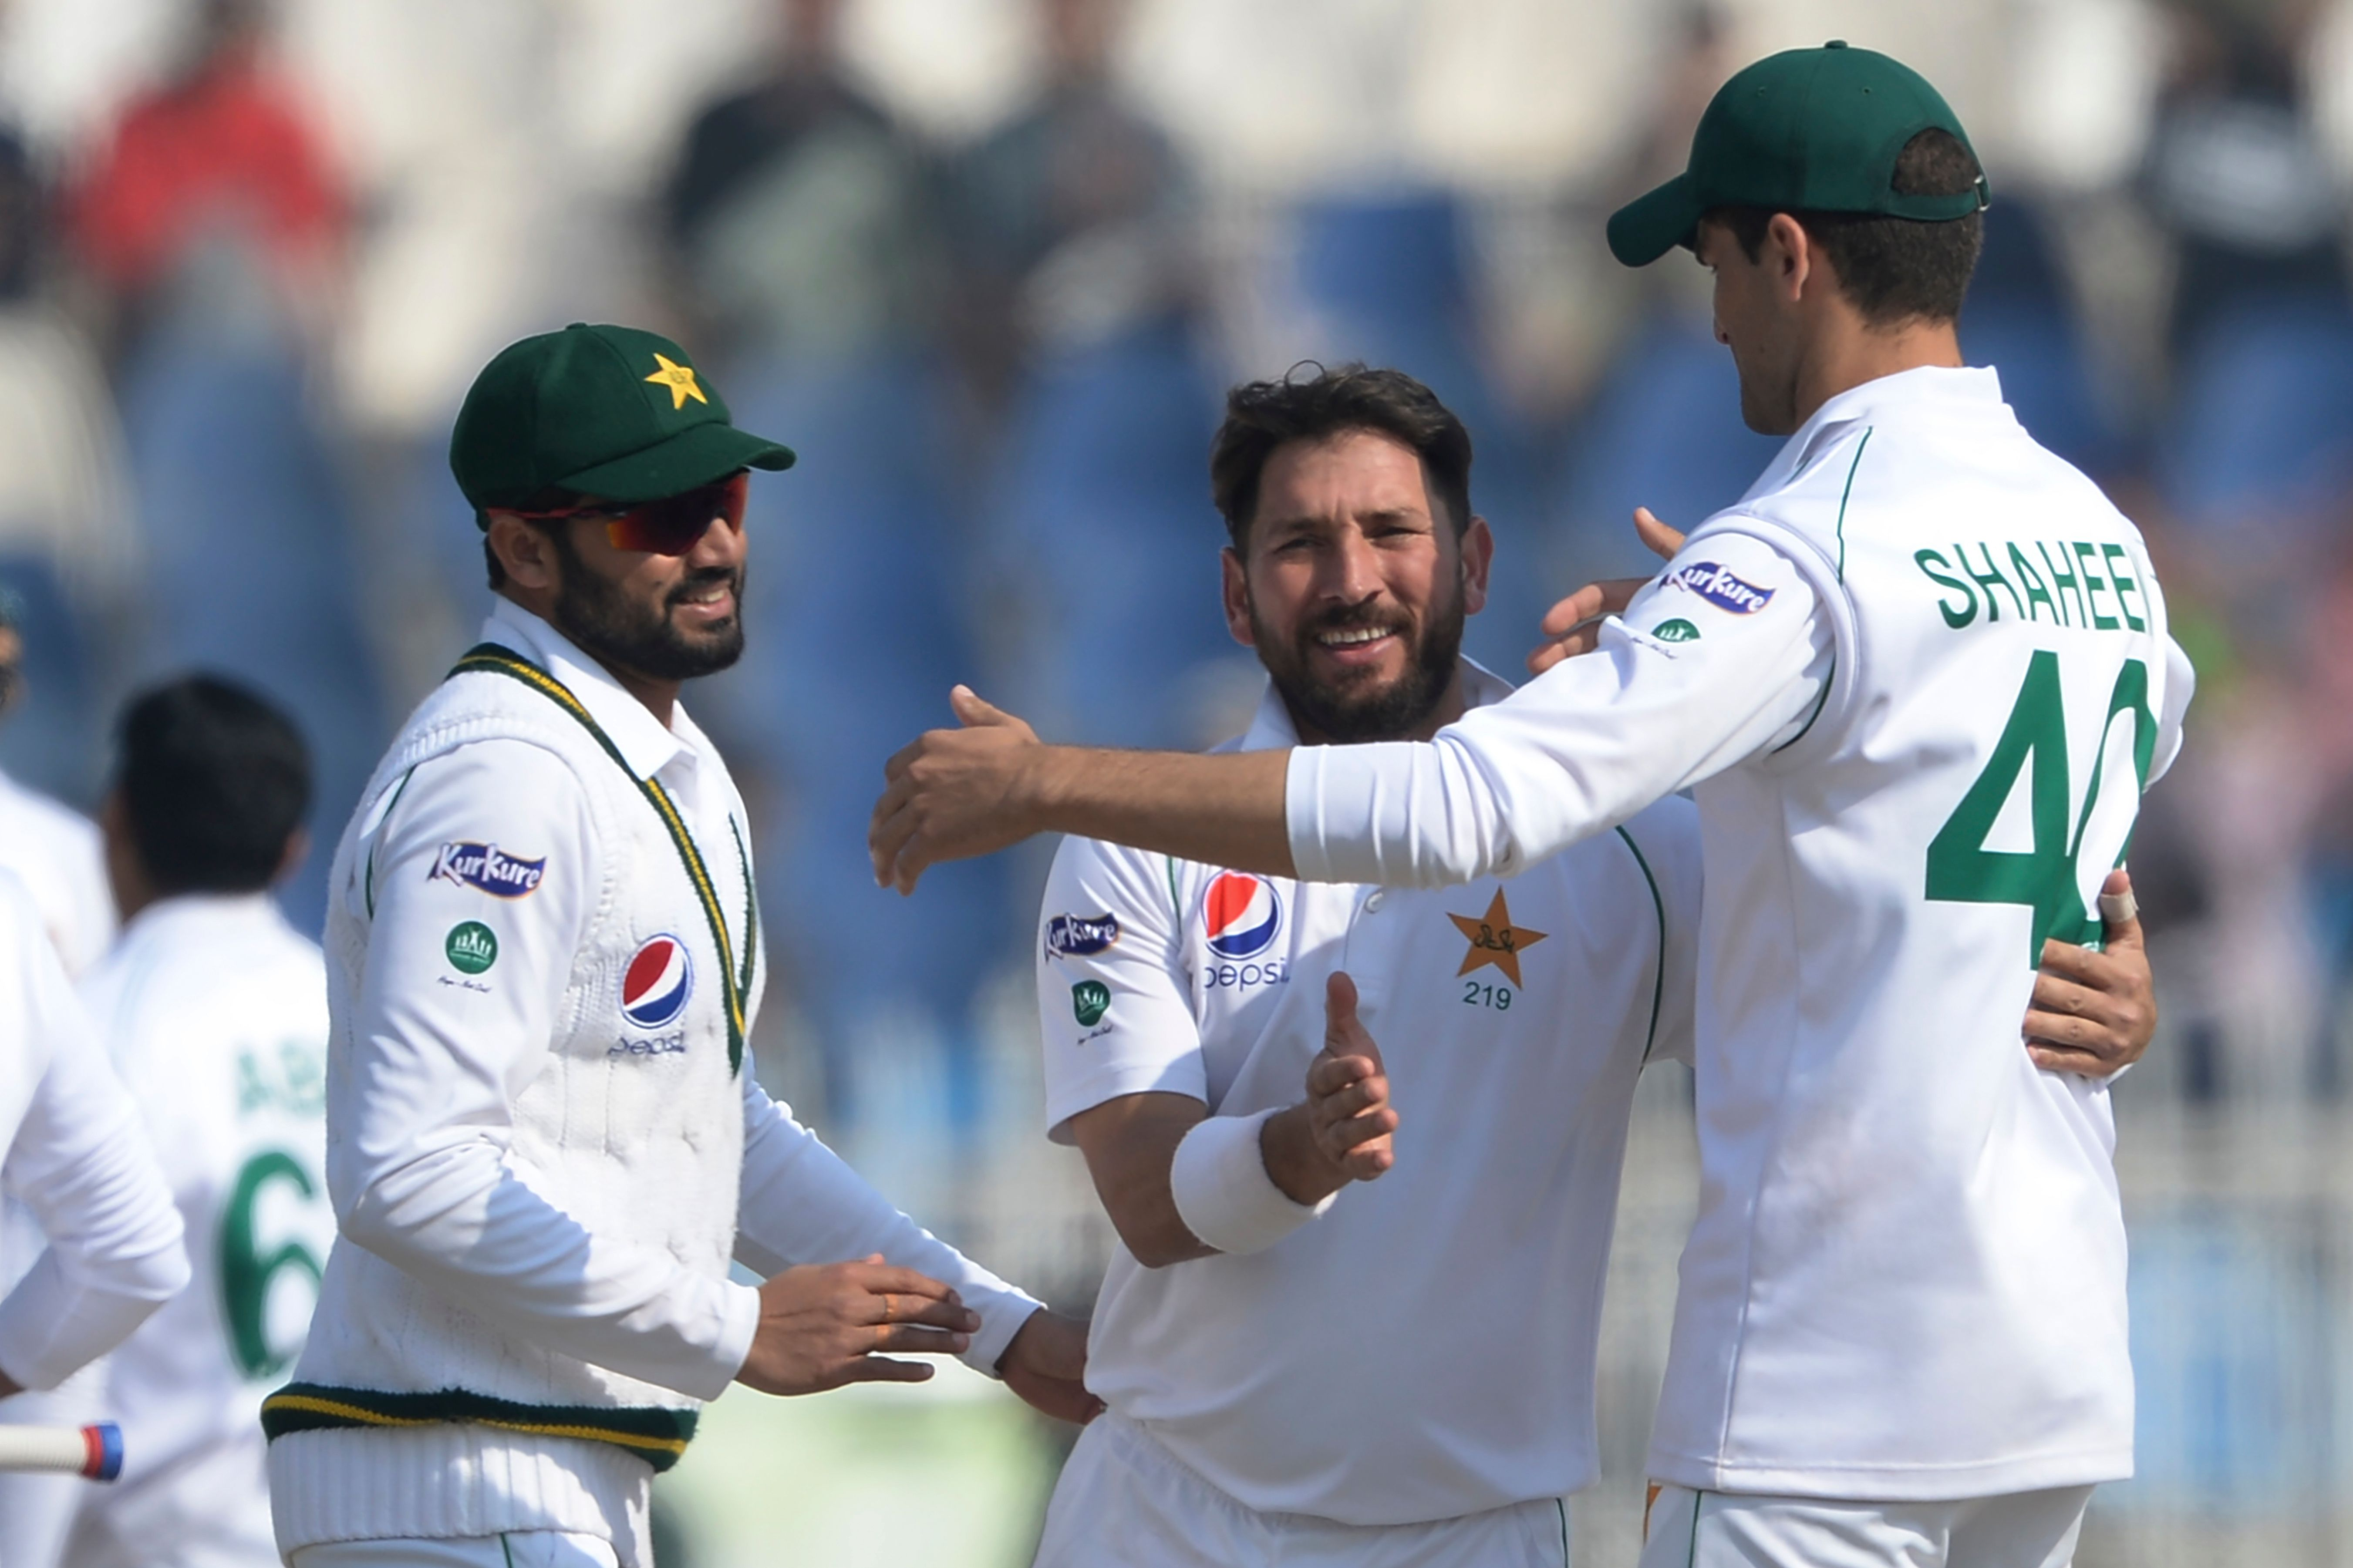 Pakistan's bowler Yasir Shah (C) celebrates with captain Azhar Ali (L) and Shaheen Shah Afridi after taking last wicket of Bangladesh's Abu Jayed during the fourth day of the first cricket Test match between Pakistan and Bangladesh at the Rawalpindi Cricket Stadium in Rawalpindi on February 10, 2020. - Pakistan completed a crushing innings and 44-run victory over Bangladesh. (Photo by AAMIR QURESHI/AFP via Getty Images)